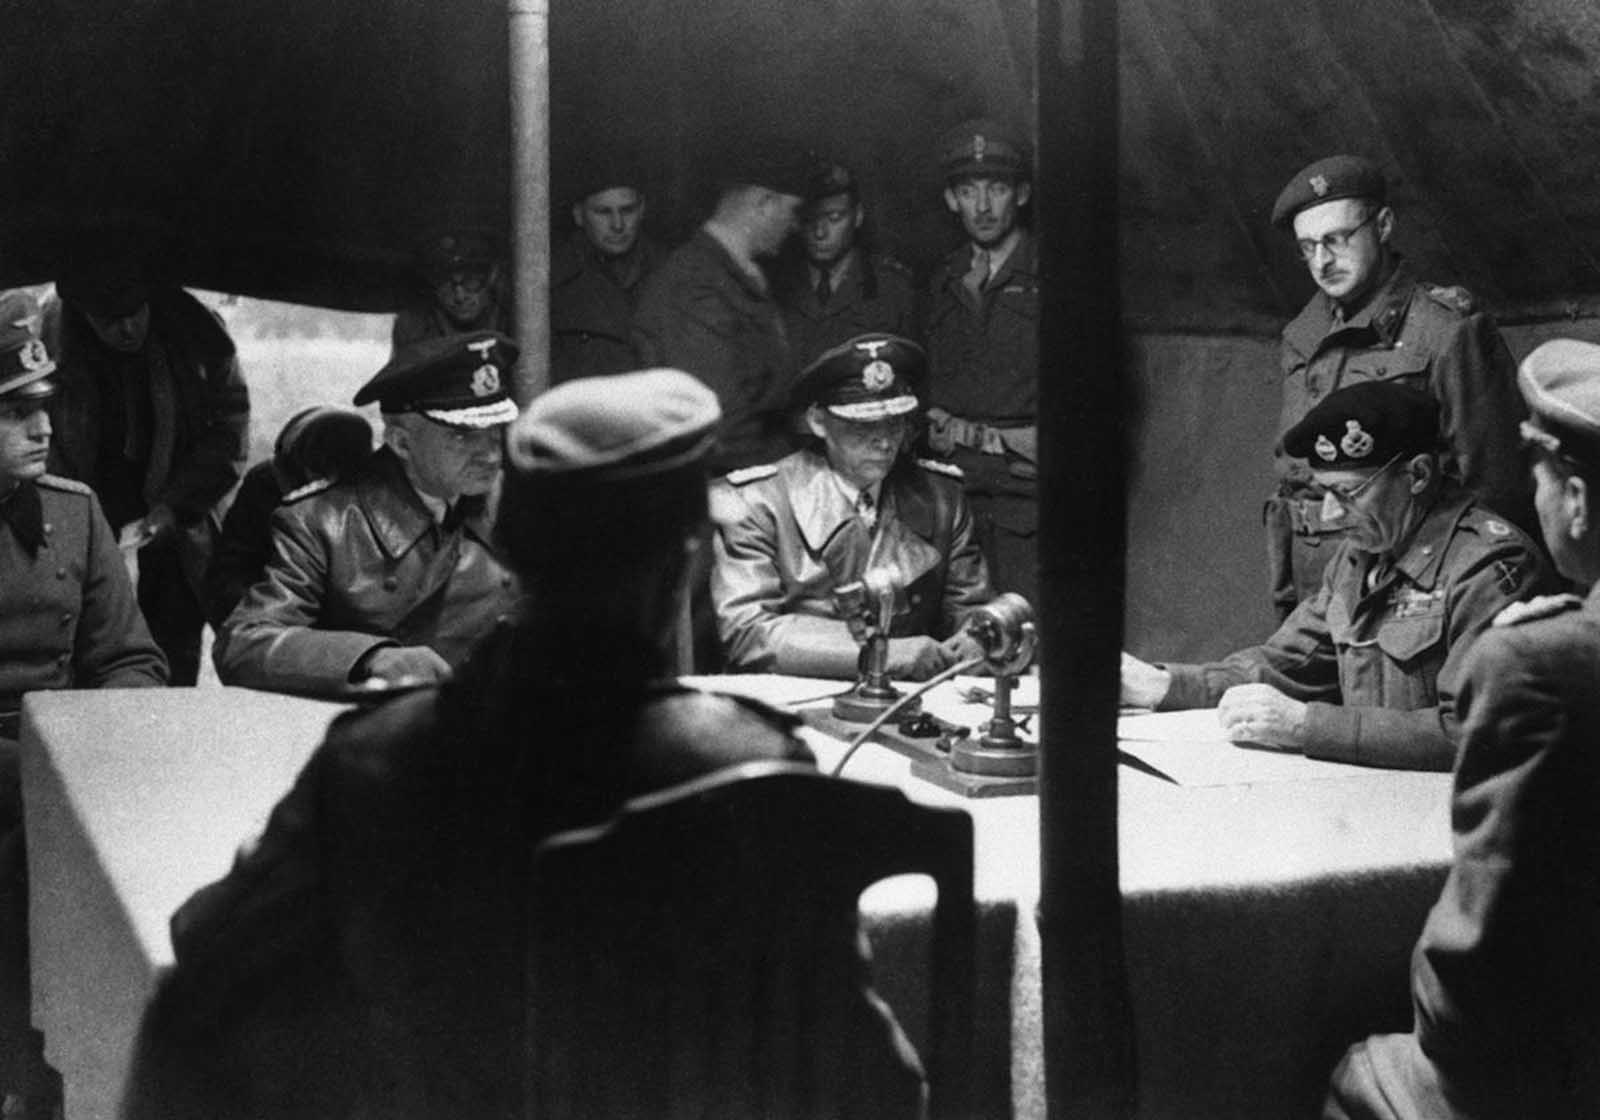 Britain's Field Marshal Bernard Montgomery, right, reads over the surrender pact, while senior German officers, from left, Major Friedel, Rear Admiral Wagner and Admiral Hans-Georg Von Friedeburg, look on, in a tent at Montgomery's 21st Army Group headquarters, at Luneburg Heath, on May 4, 1945. The pact agreed a ceasefire on the British fronts in north west Germany, Denmark and Holland as from 8am on May 5. German forces in Italy had surrendered earlier, on April 29, and the remainder of the the Army in Western Europe surrendered on May 7 -- on the Eastern Front, the German surrender to the Soviets took place on May 8, 1945. More than five years of horrific warfare on European soil was officially over.